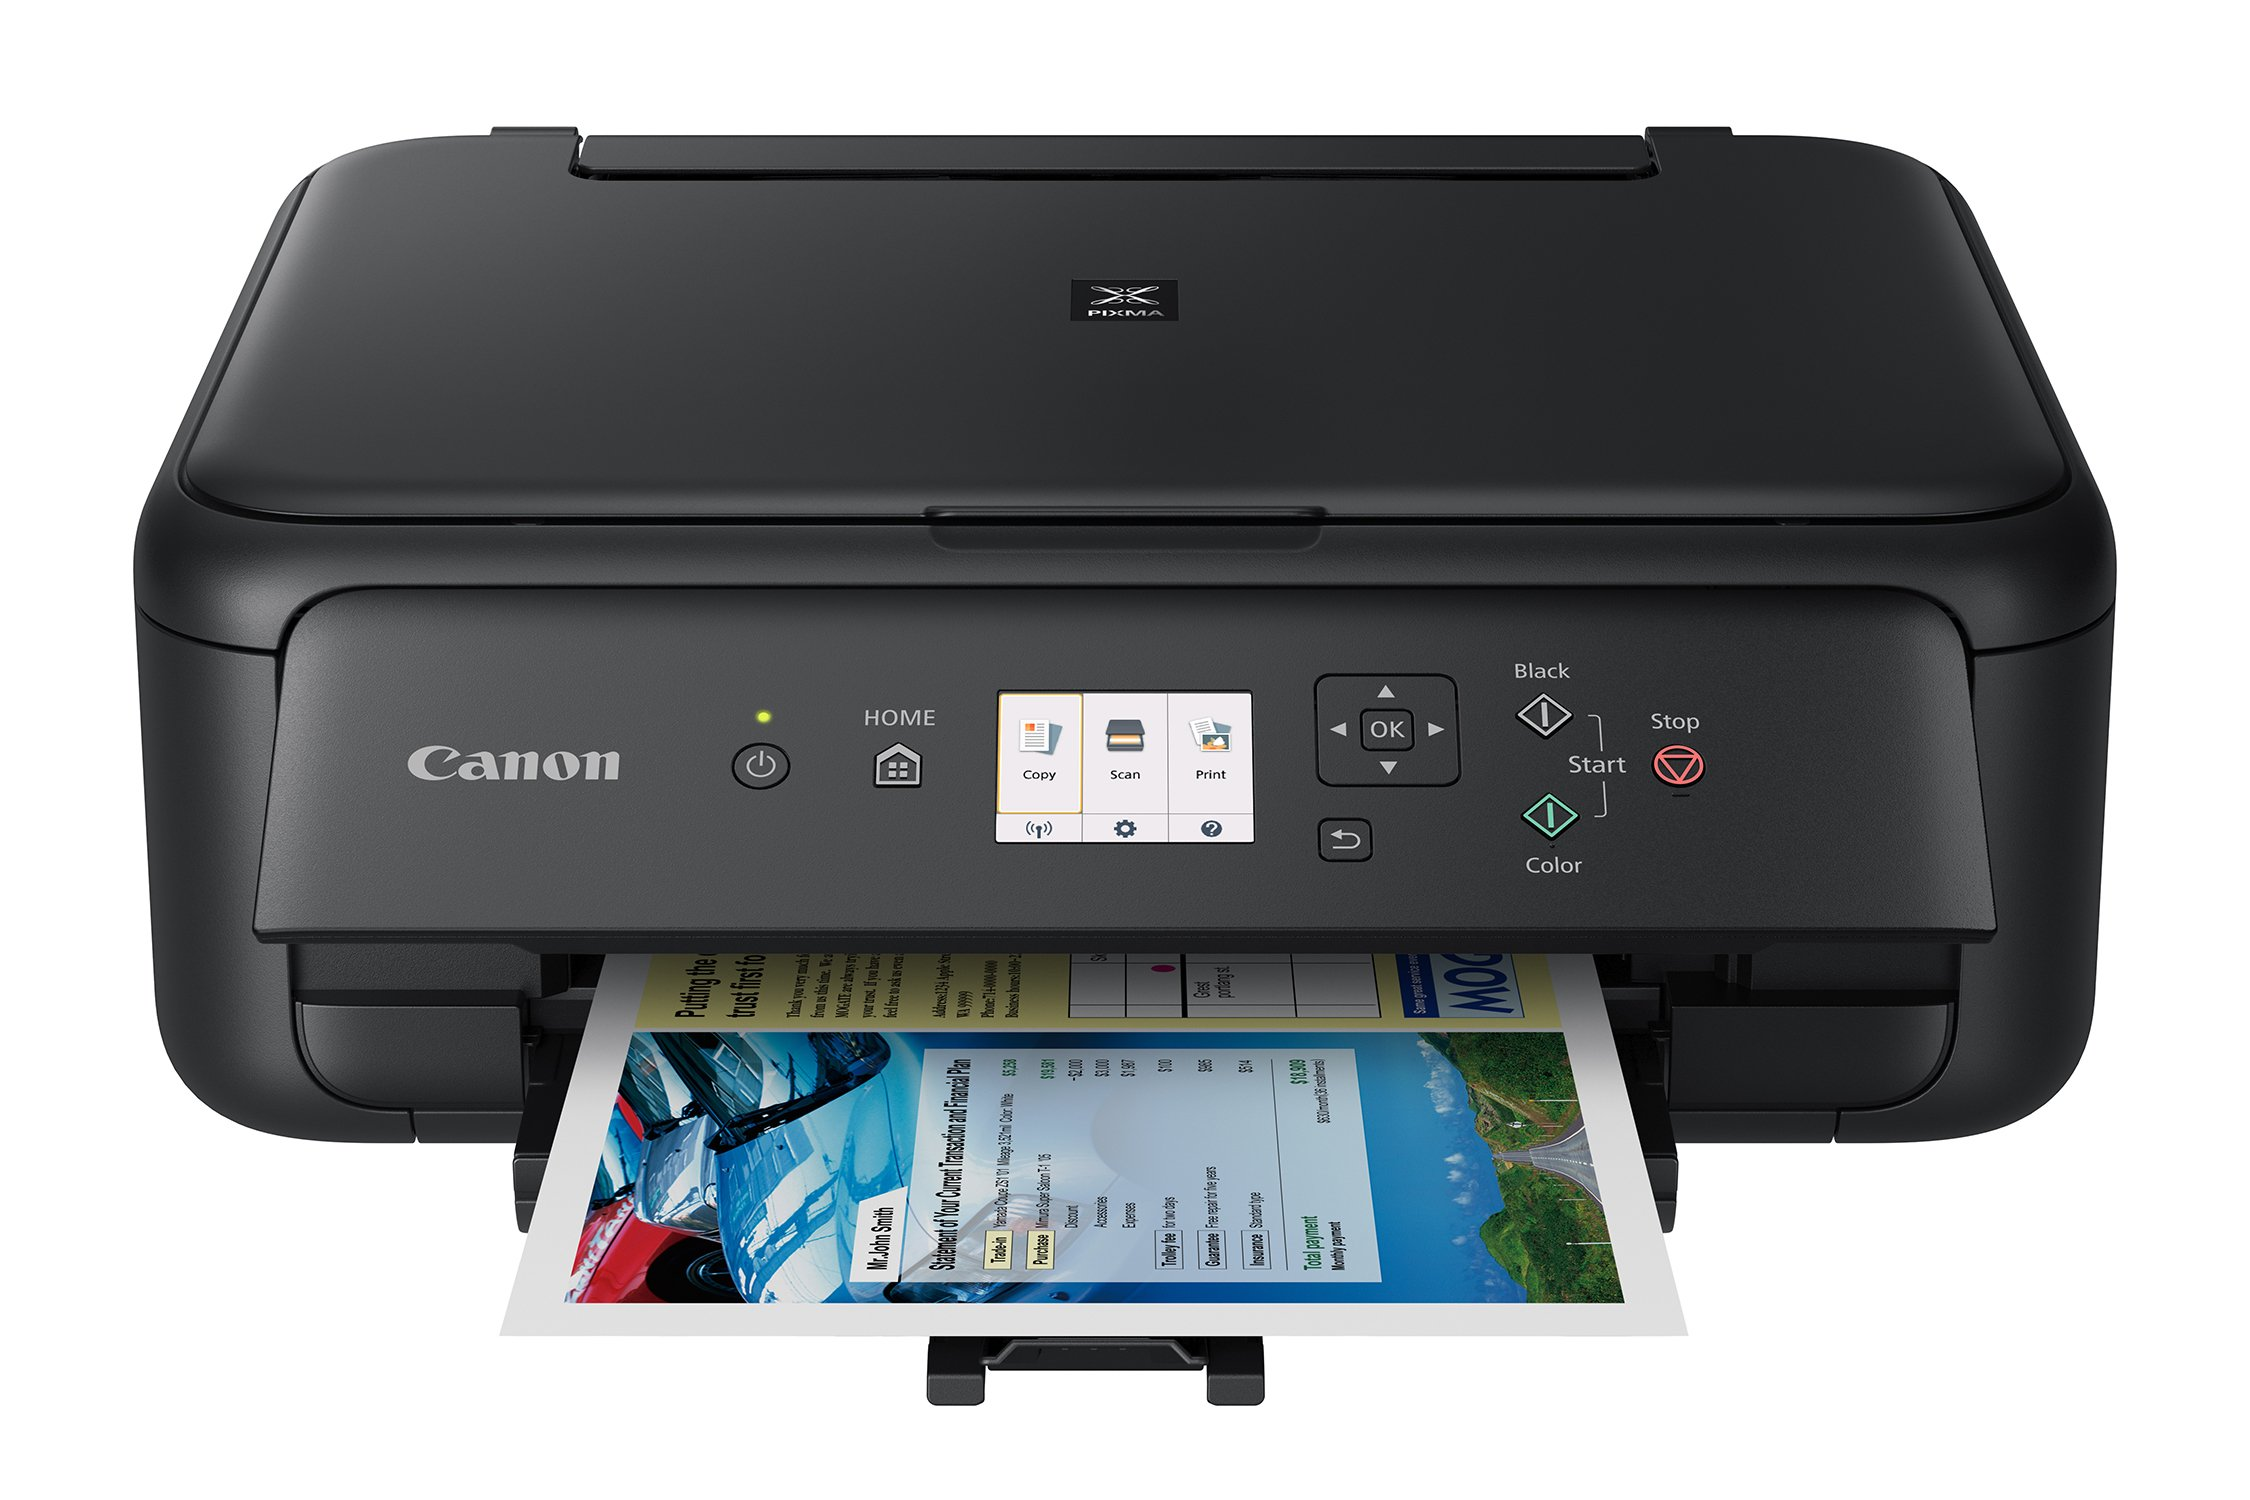 Canon TS5120 Wireless Printer with Scanner and Copier: Mobile and Tablet Printing, with Airprint(TM) and Google Cloud Print compatible, Black by Canon